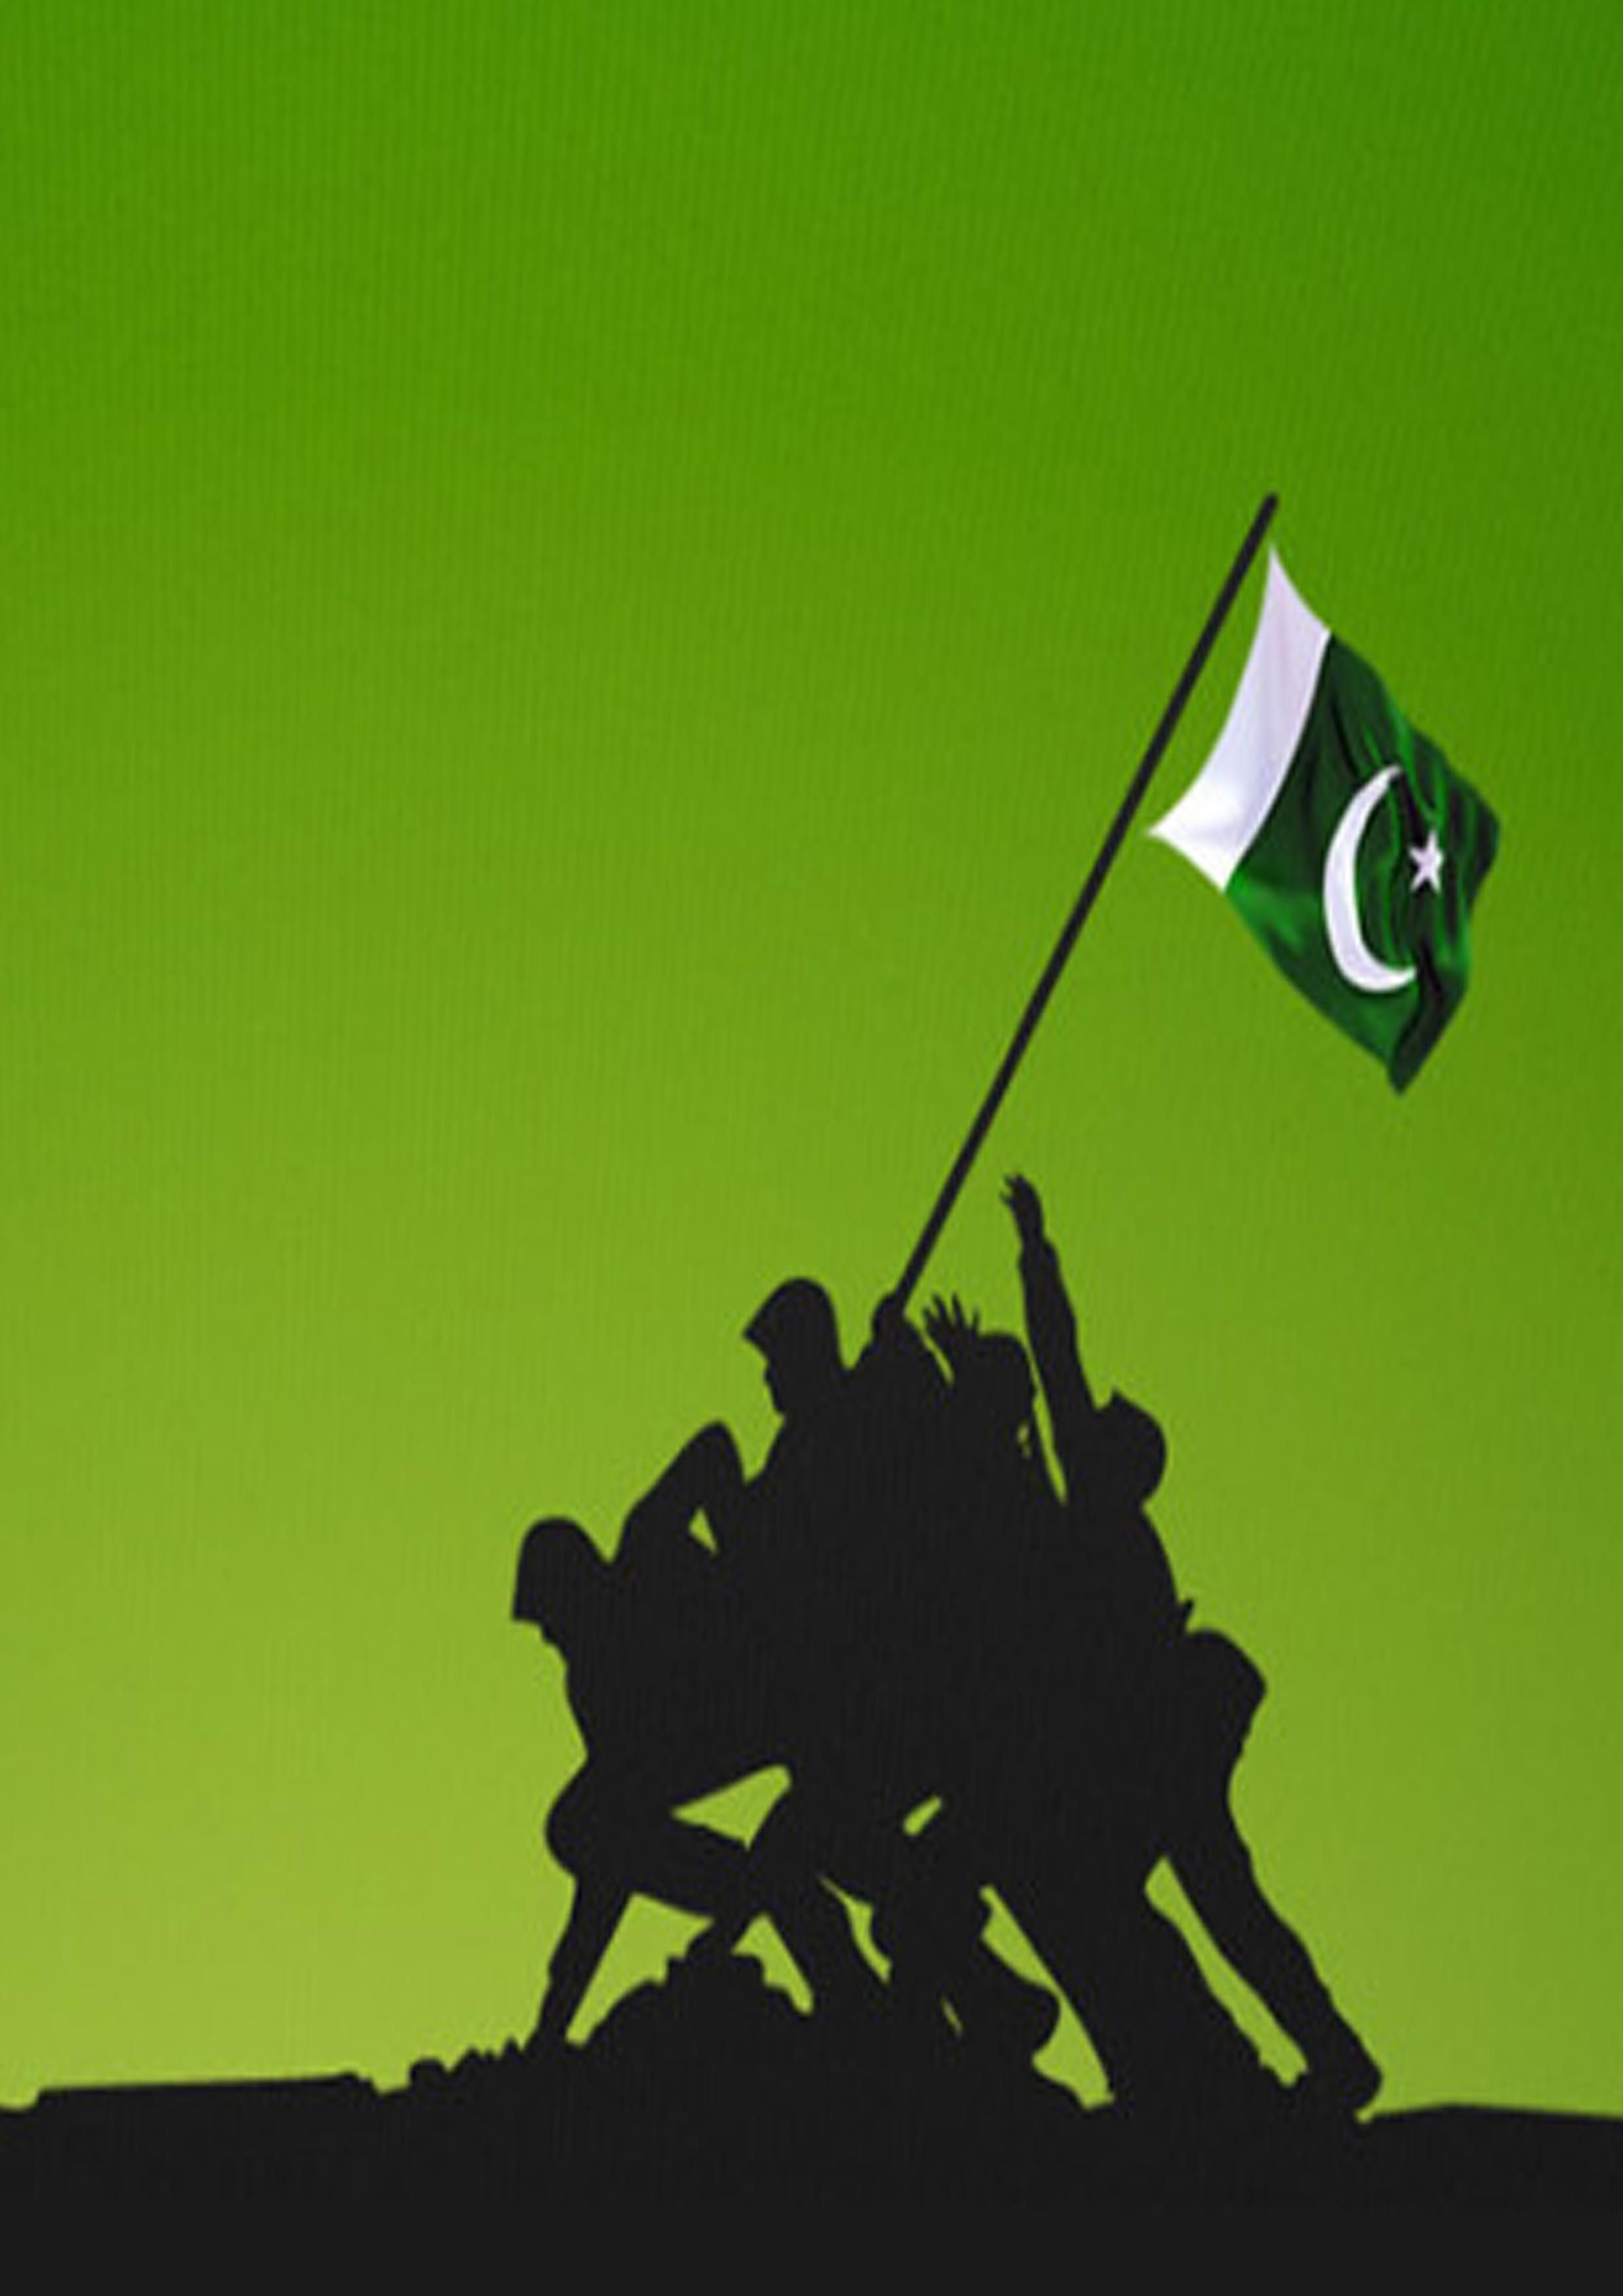 Ayeshakhan Wish You Happy Independence Day | Merry christmas and